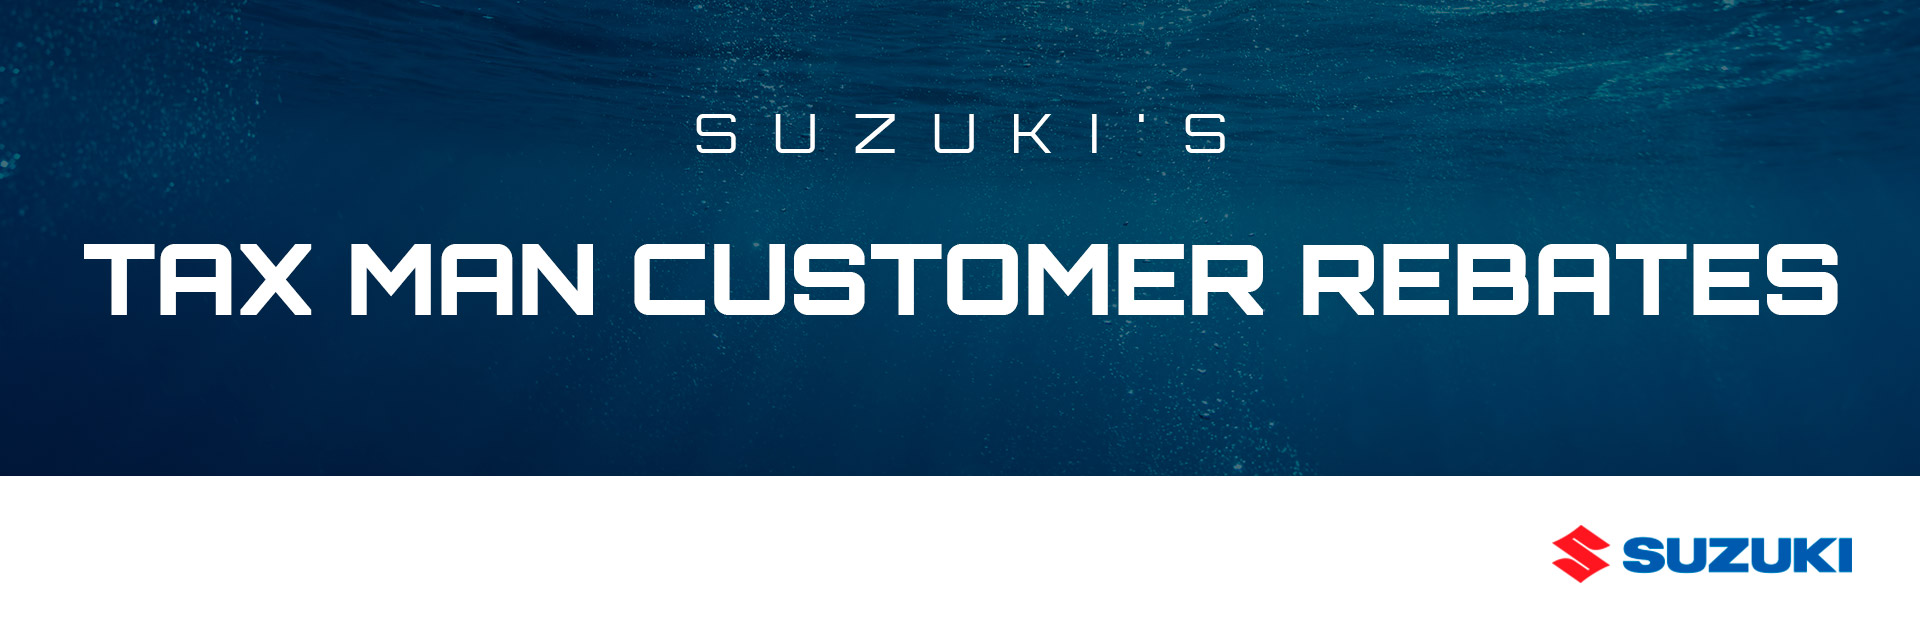 Suzuki: Suzuki Tax Man Customer Rebates